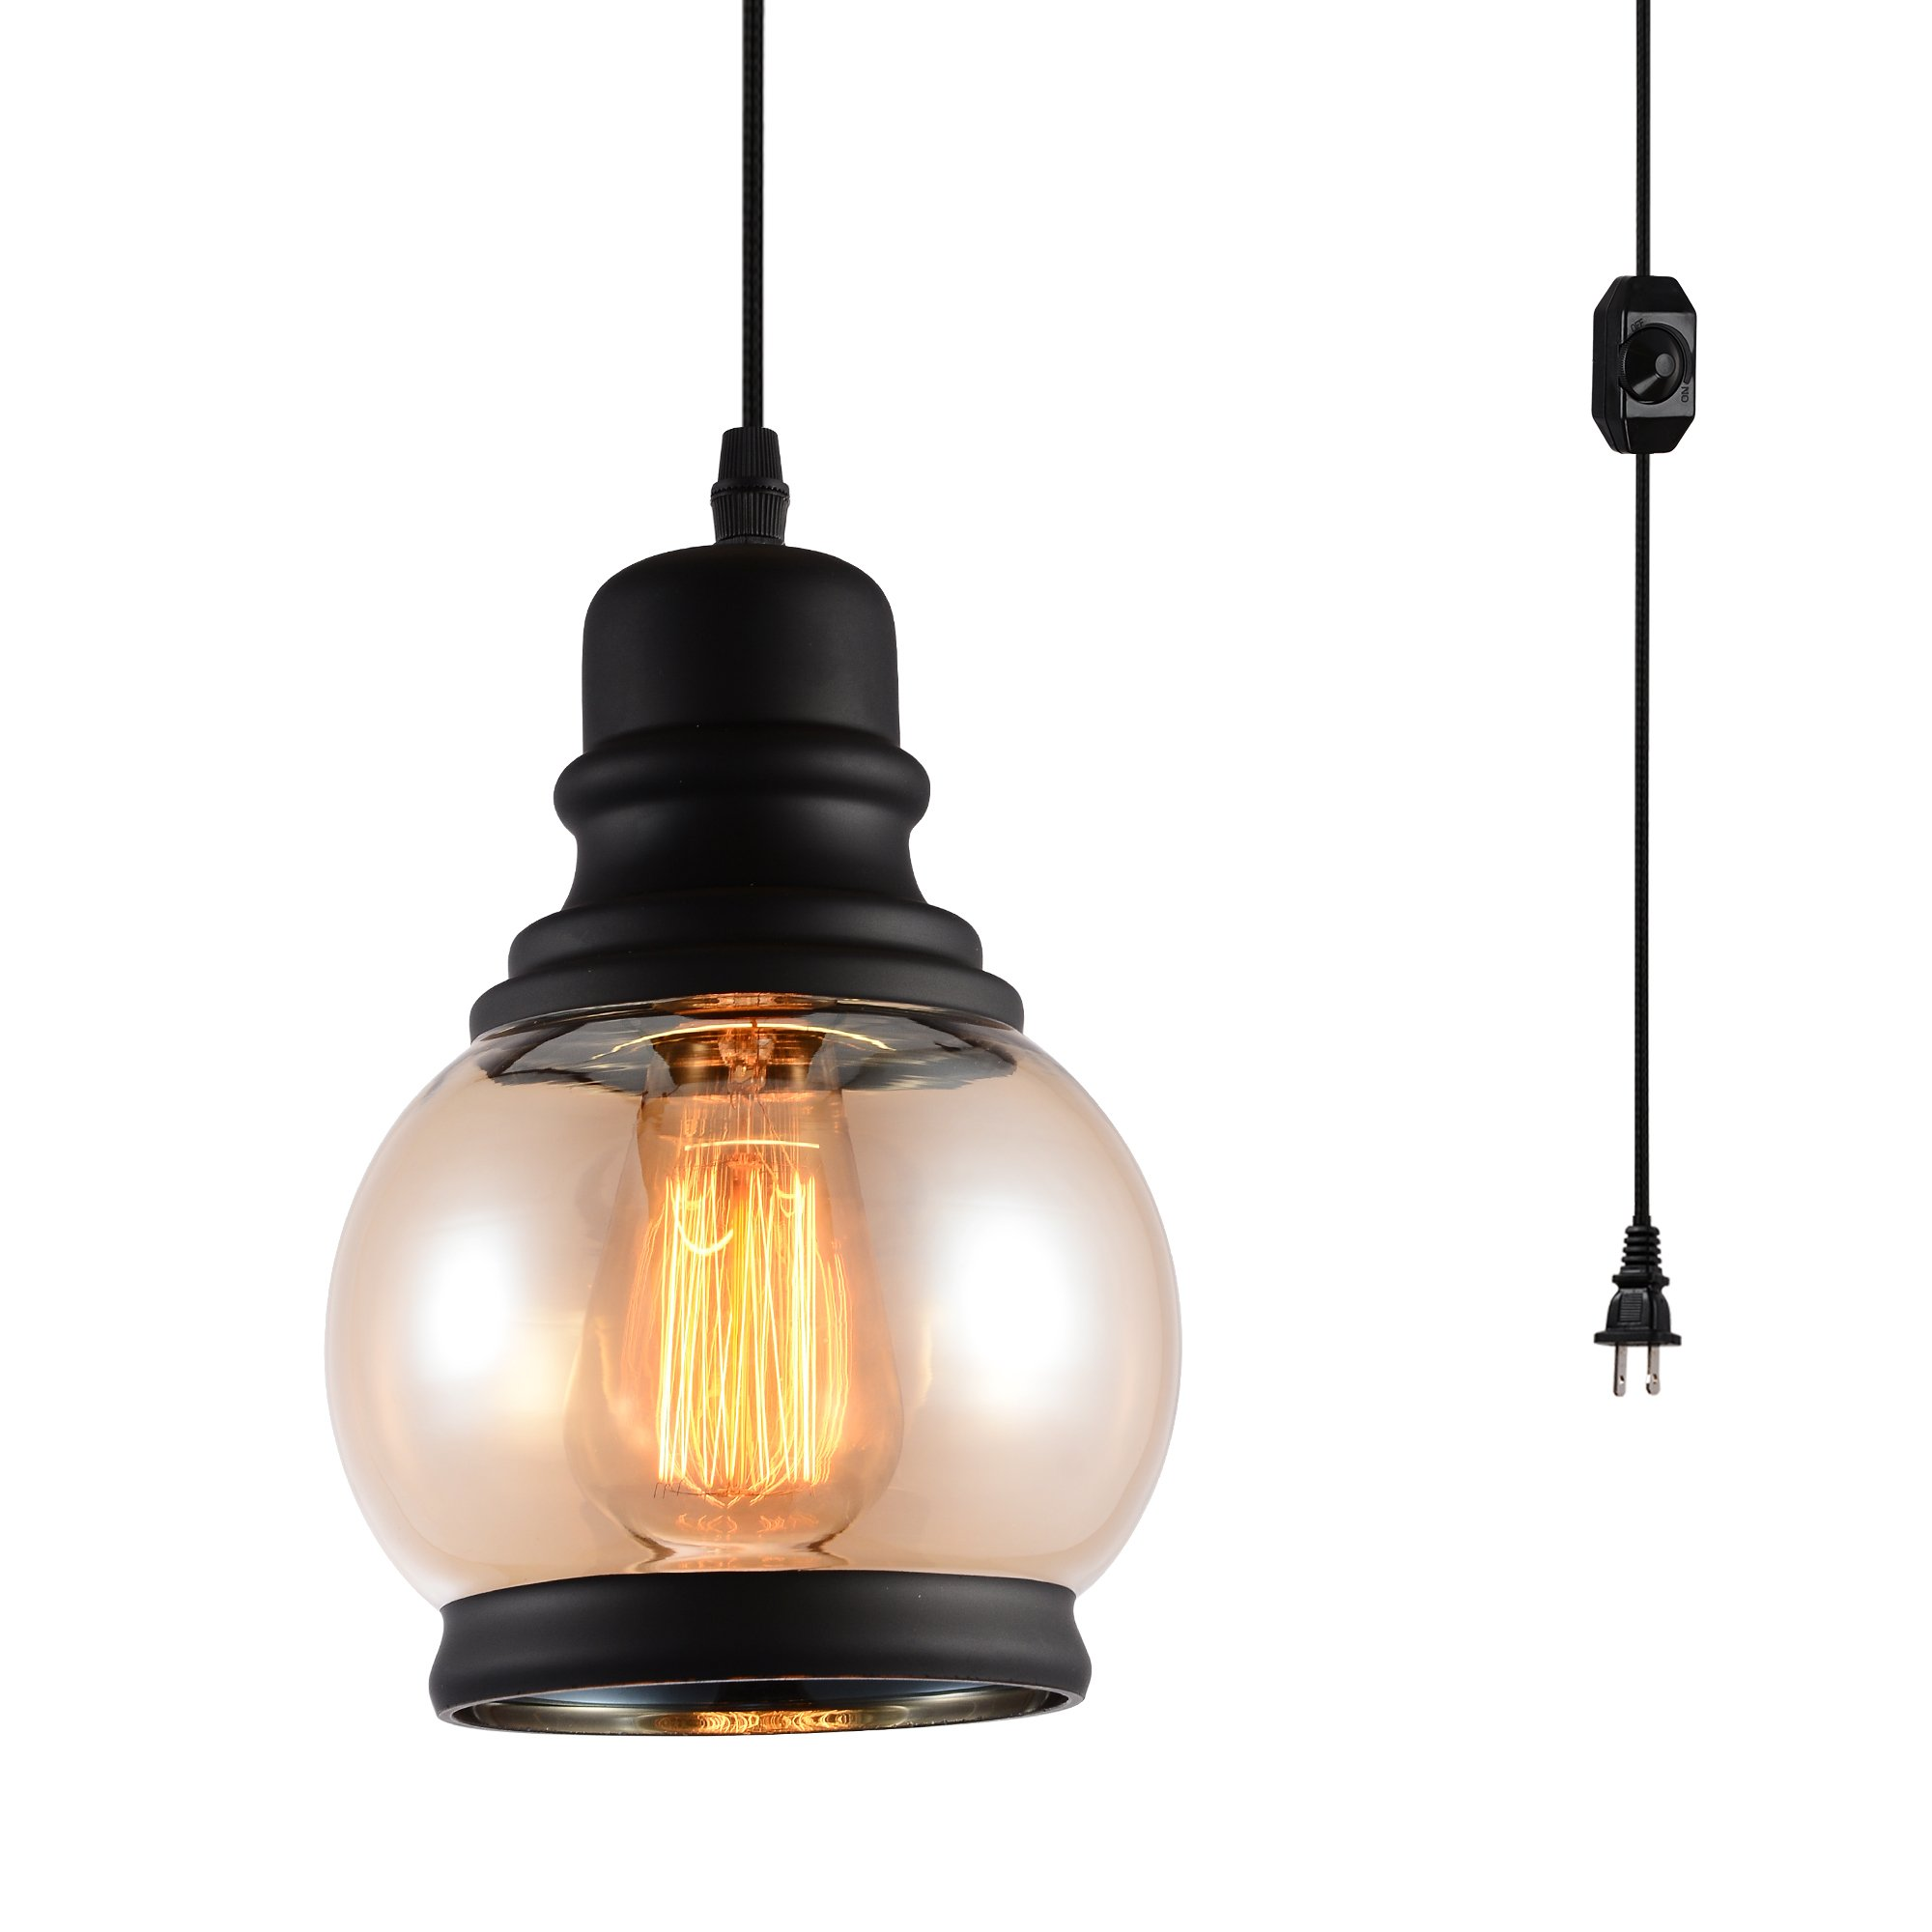 HMVPL Glass Hanging Lights with Plug in Cord and On/Off Dimmer Switch, Updated Industrial Edison Vintage Swag Pendant Lamps for Kitchen Island or Dining Room - Black Orb